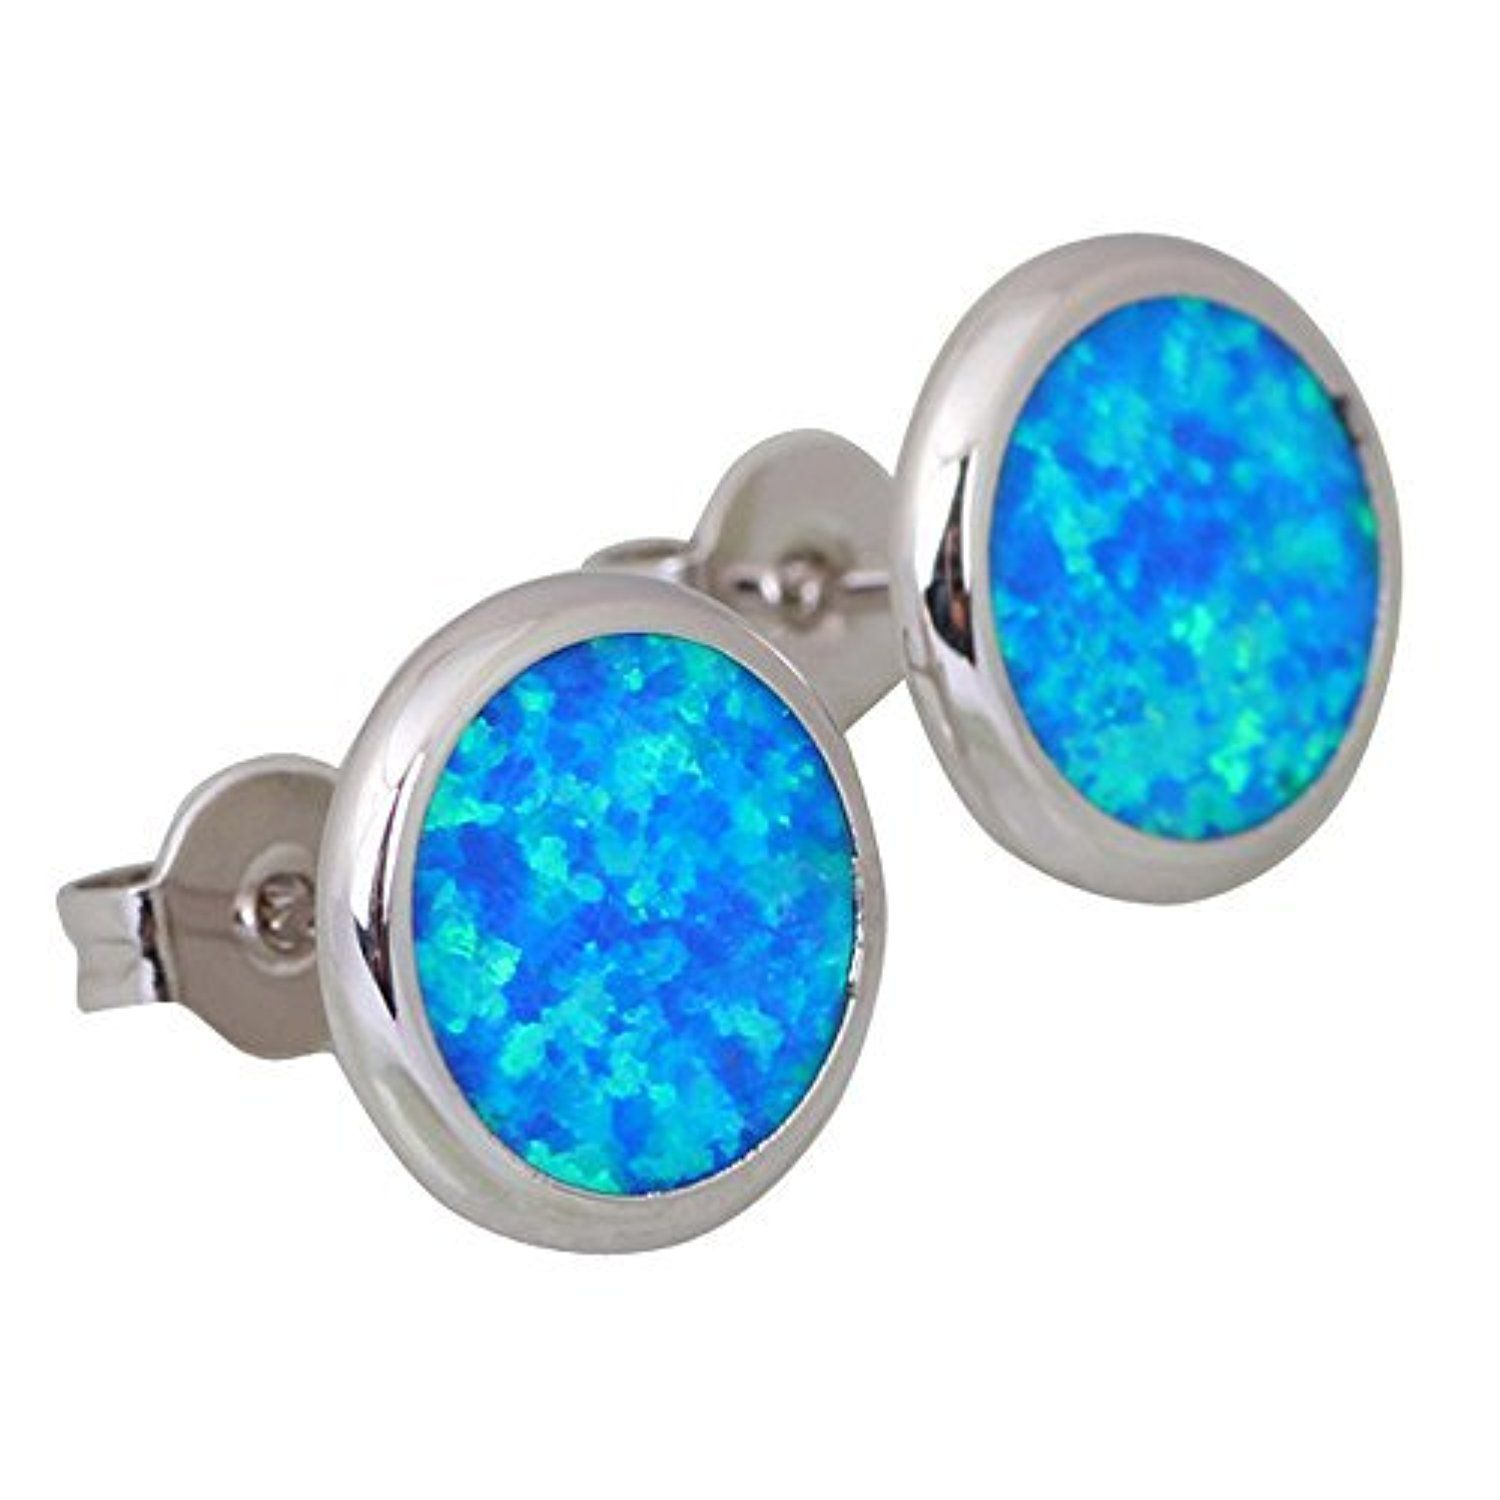 Charismatic Fashion Brand Designer Silver Blue Fire Opal Earrings